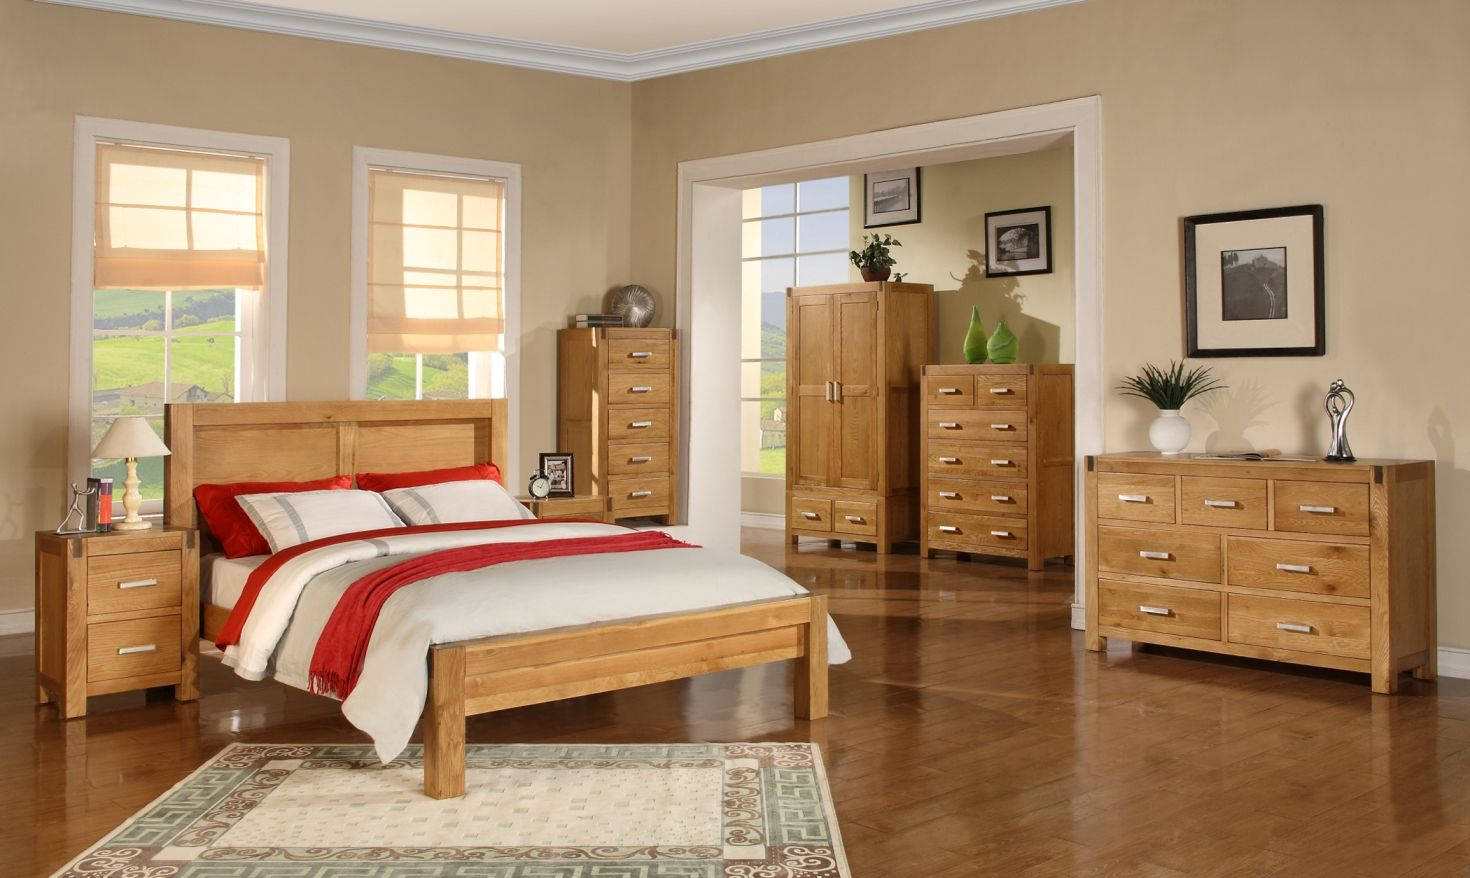 Solid Wood Bedroom Furniture How Solid Wood Bedroom Furniture Can Help You Build A Better Home Oak Bedroom Furniture Oak Bedroom Furniture Sets Oak Bedroom